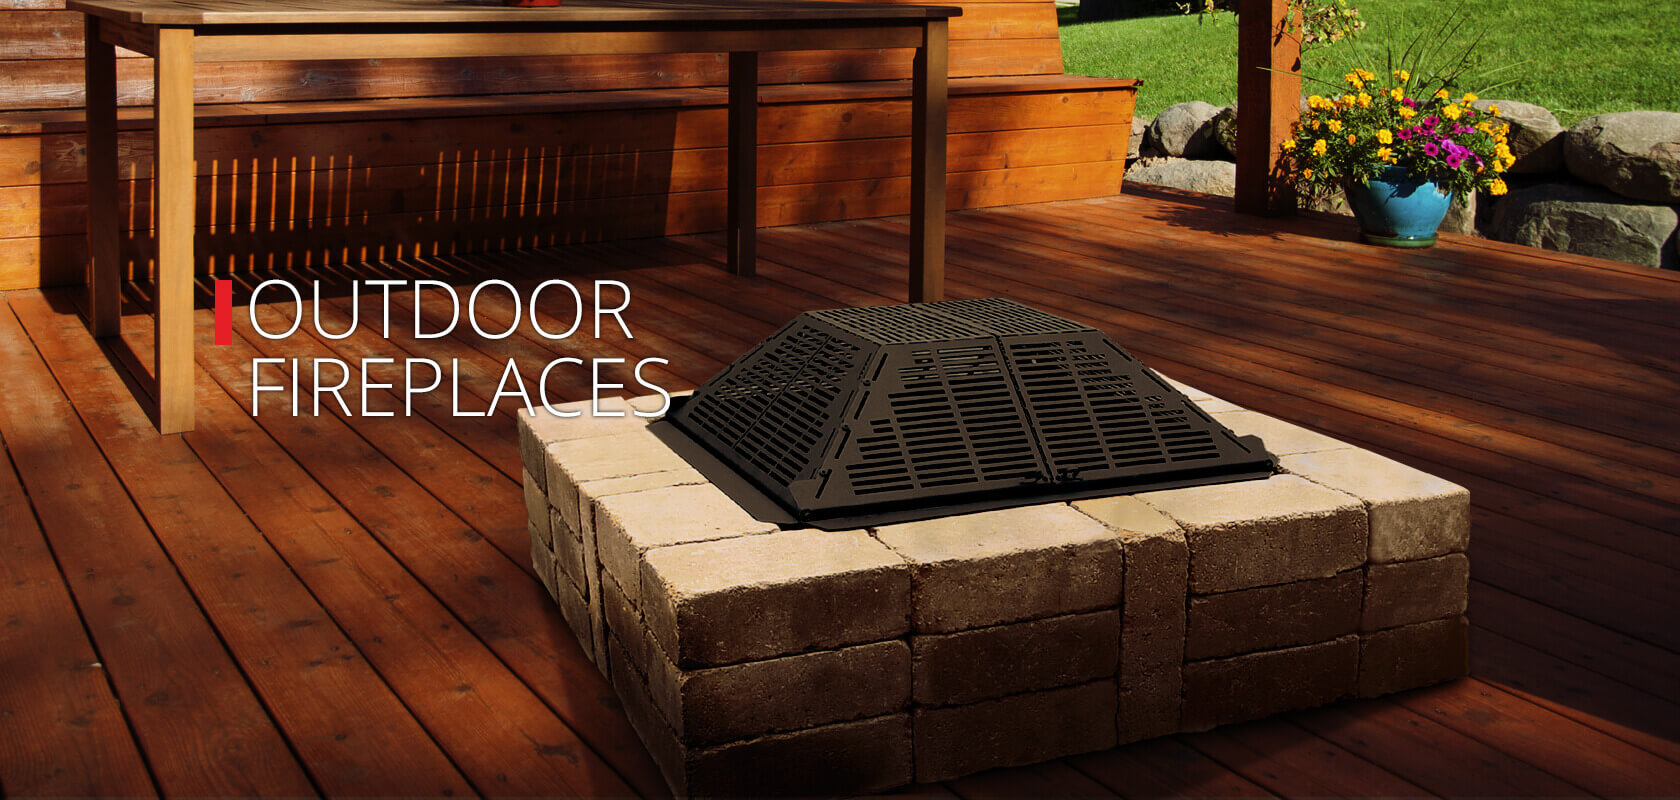 Outdoor products - J. A. ROBY inc